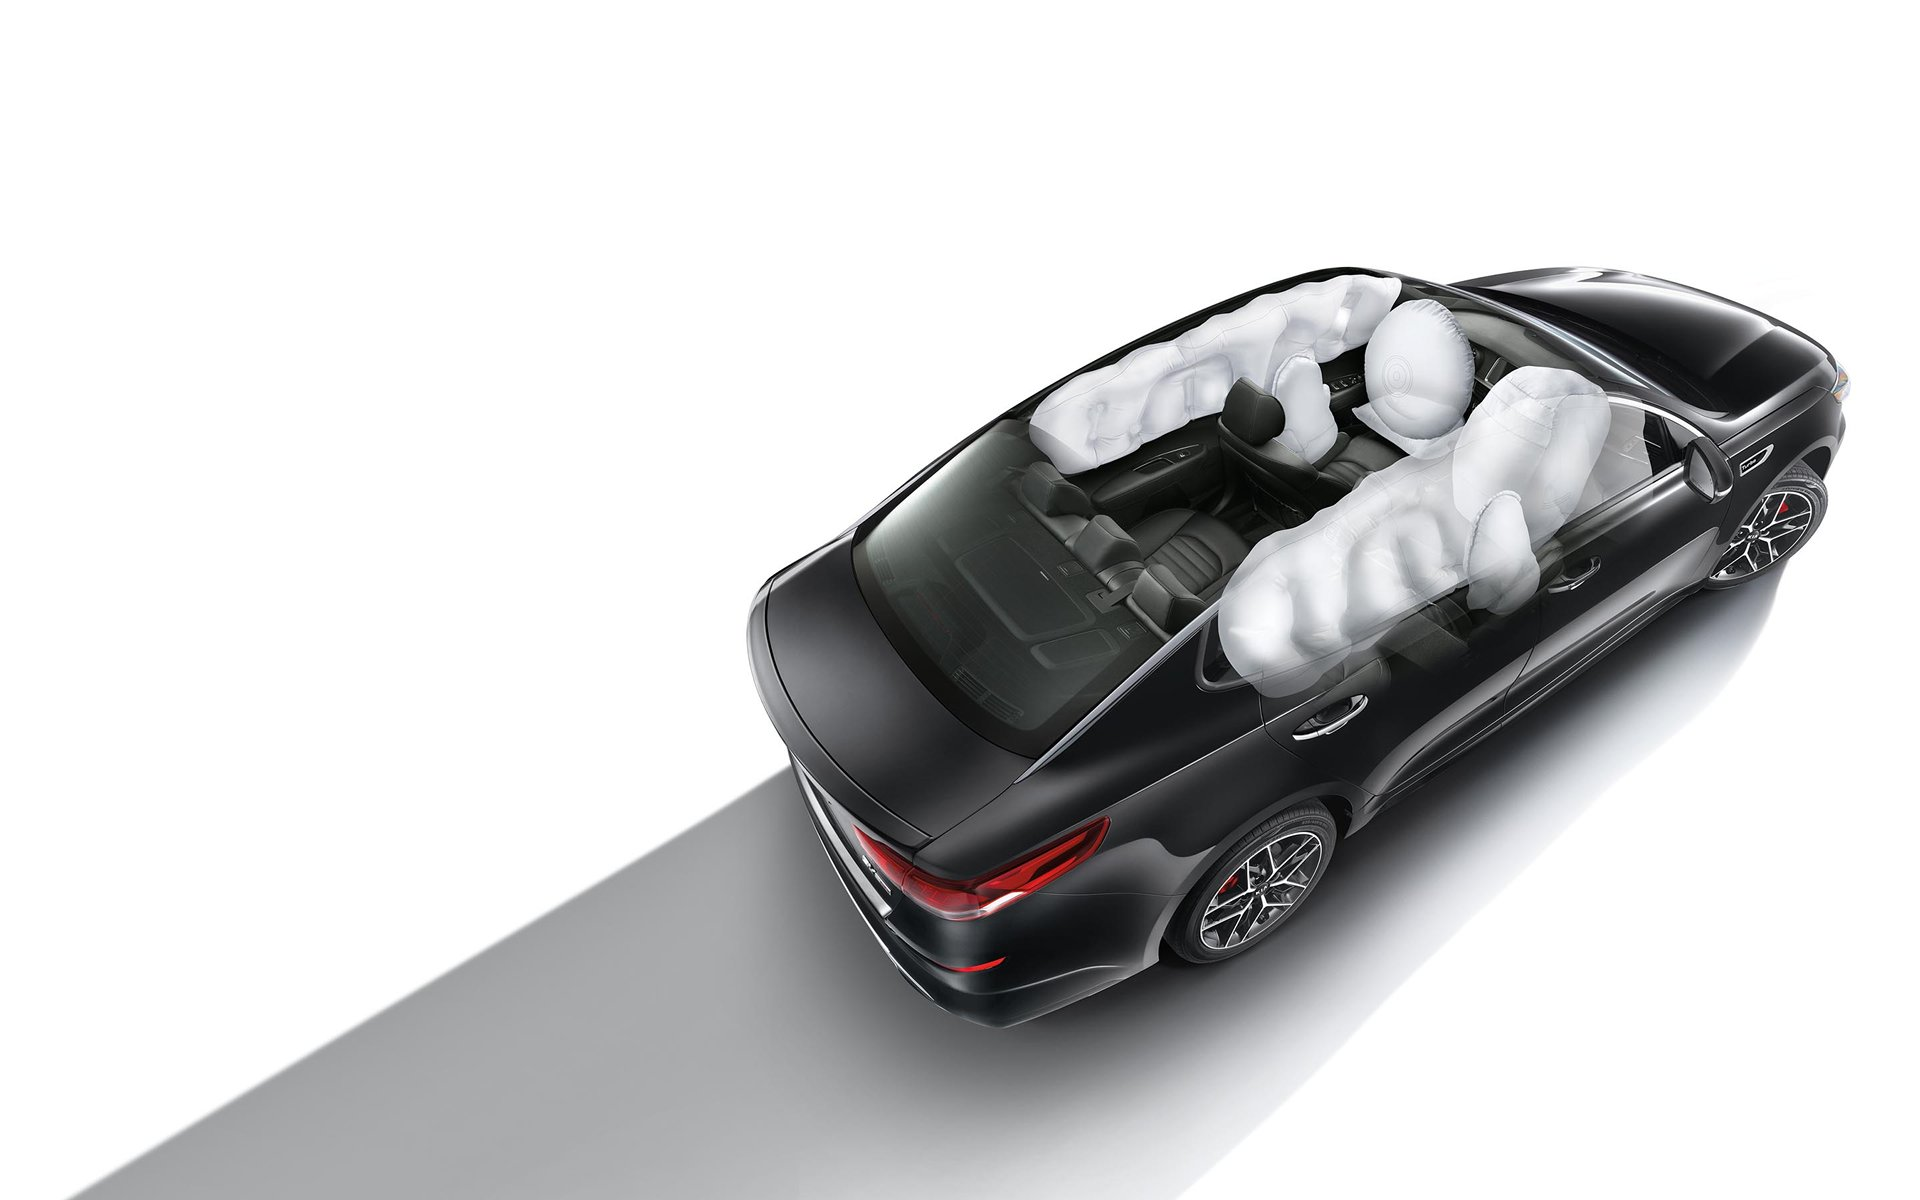 New 2019 Kia Optima Airbags